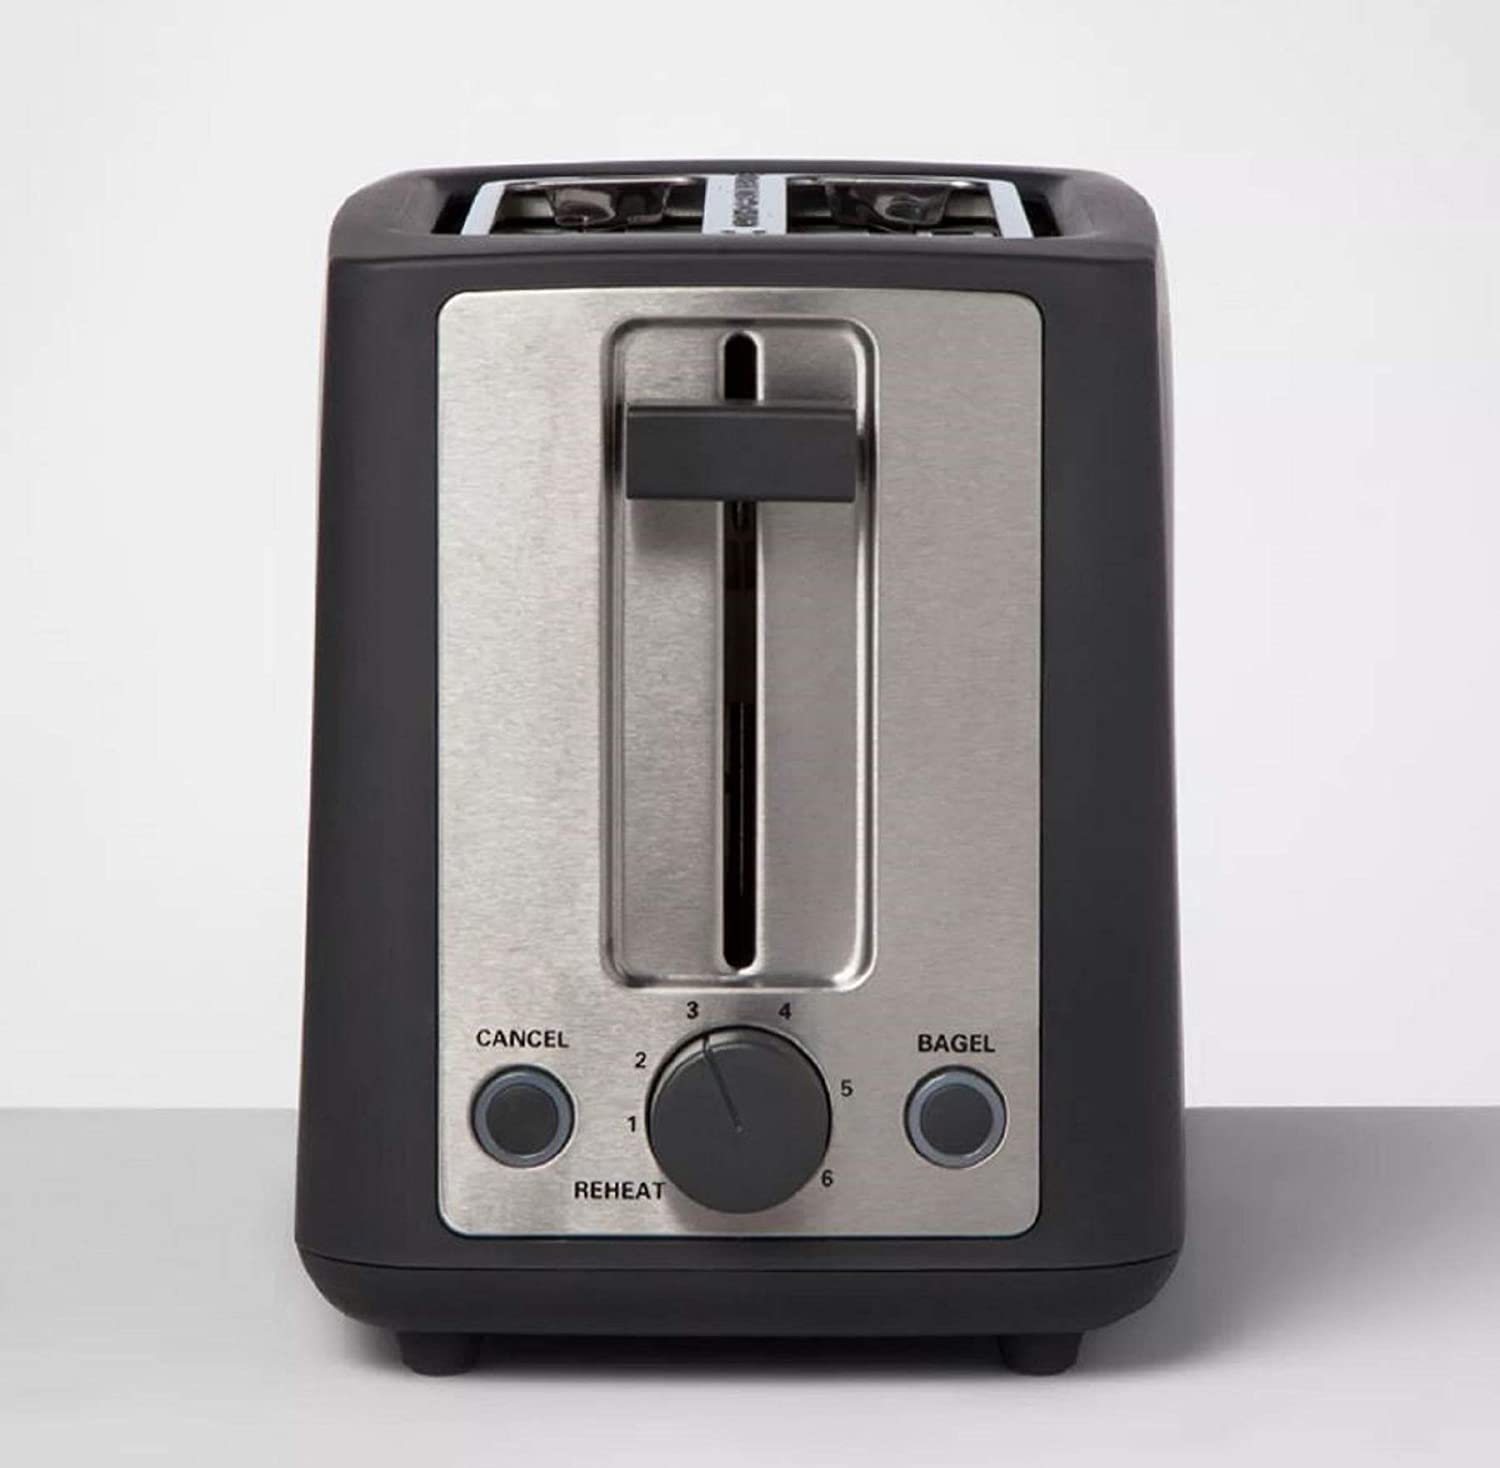 Stainless Steel 2 Slice Extra Wide Slot Toaster Compact Ideal Gift for Family & Friends